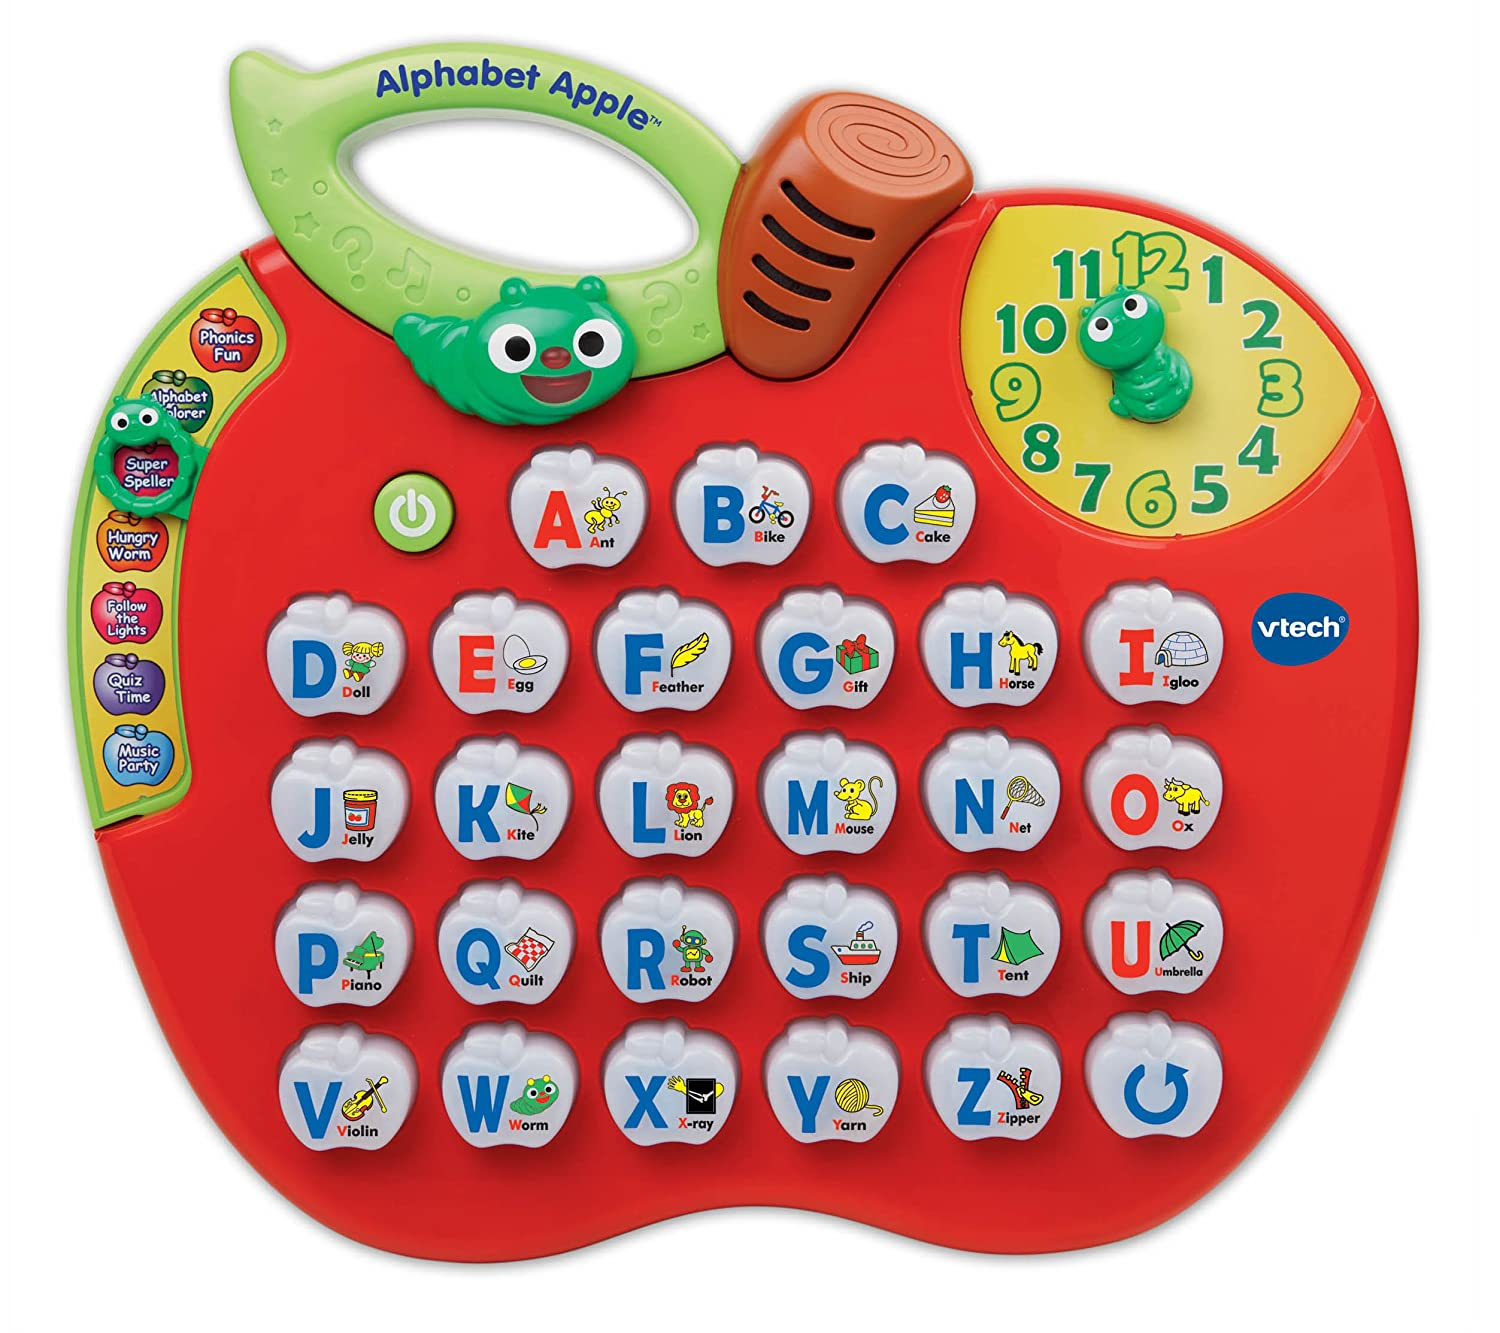 VTech Alphabet Apple V Tech 80-139000